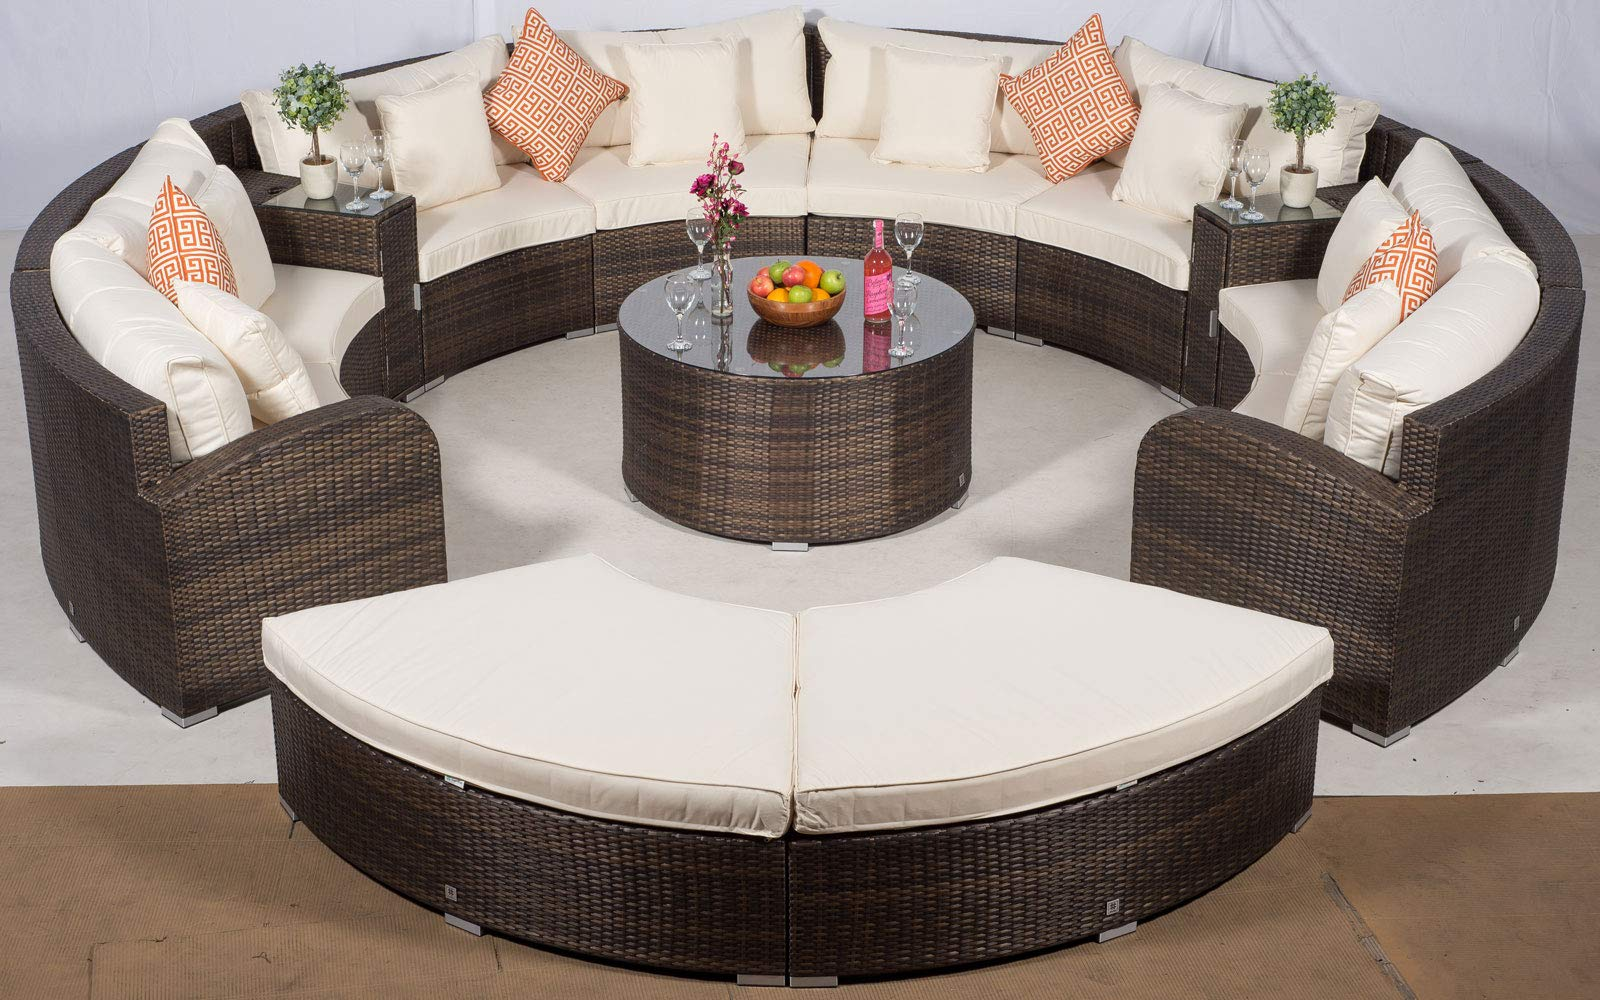 71jljRwShYL - Giardino Riviera 8 Seat Brown Rattan Garden Furniture Set + Coffee Table, 2 Armrest Coolers & 2 Stools + Outdoor Furniture Covers | 13 pcs Round Rattan Sofa Set | Rattan Patio Conservatory Furniture